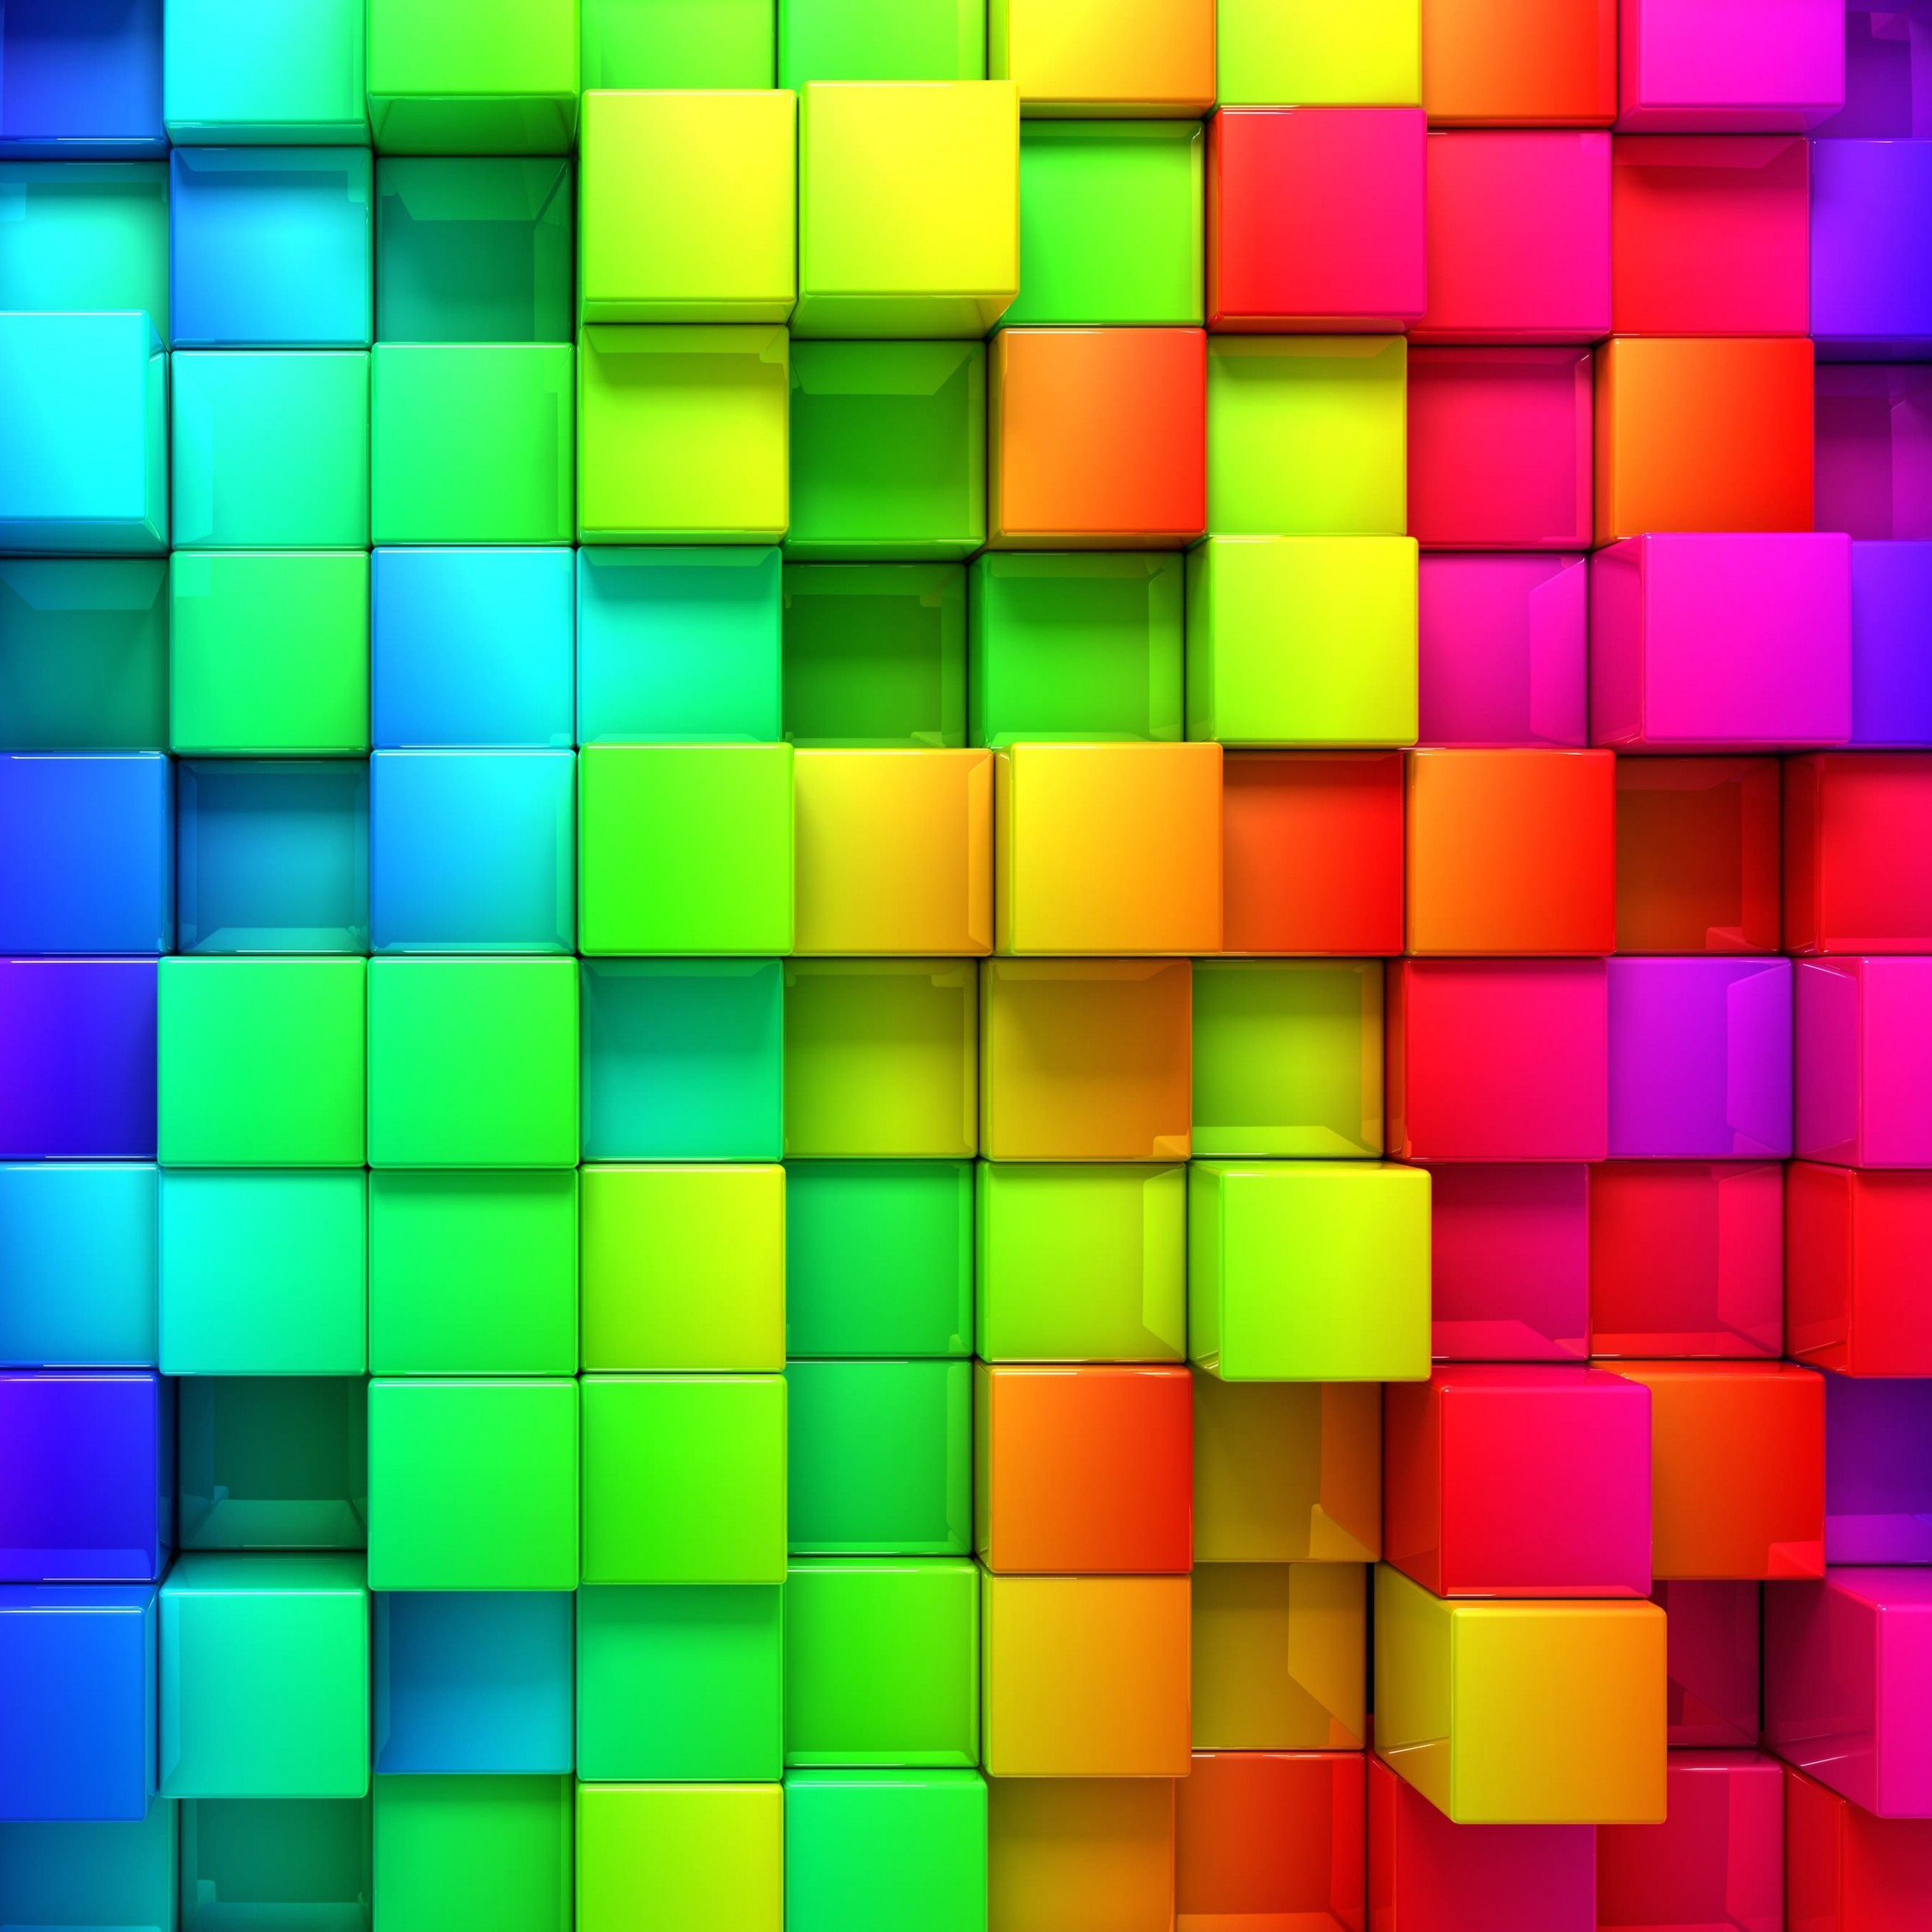 Cubic Rainbow Wallpaper for Apple iPad Air